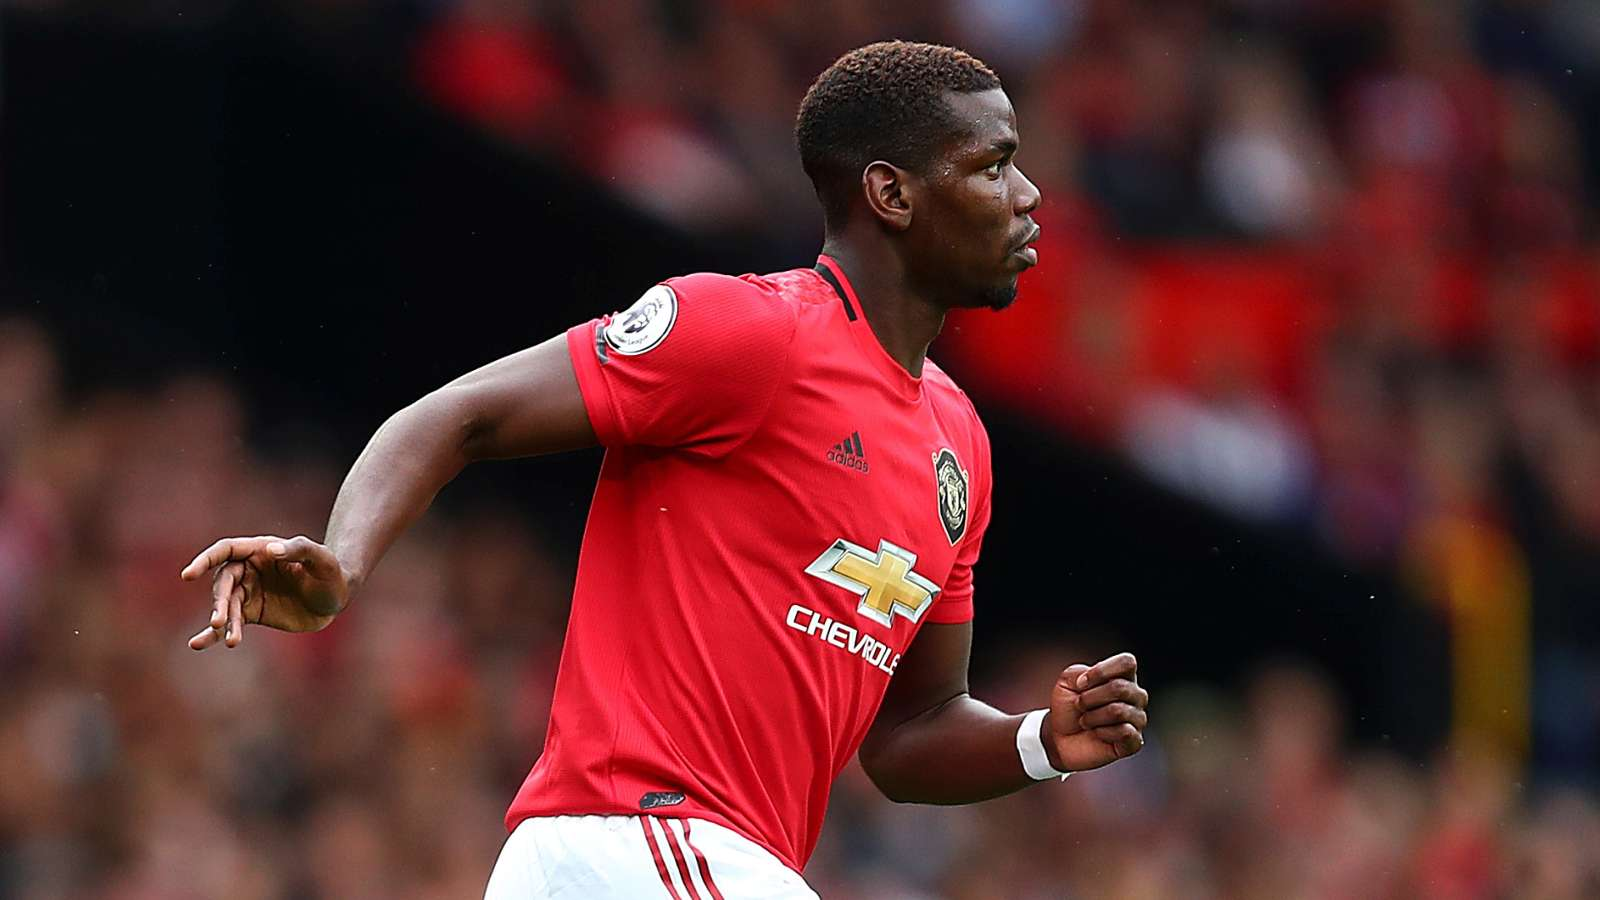 Despite the brilliance of Valverde - Real Madrid do not give up in pogba deal